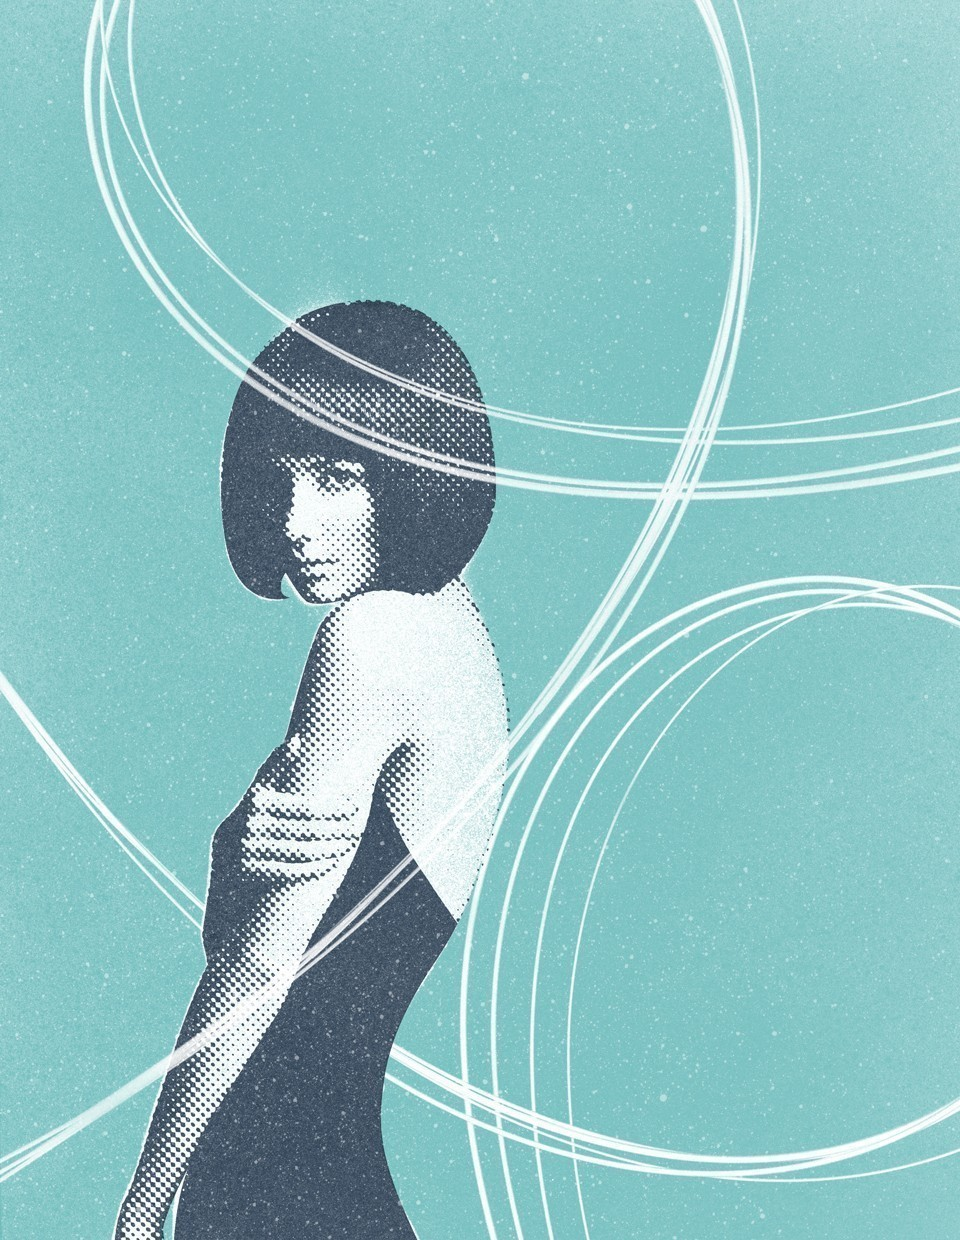 Dylan Kendle - Nouvelle Vague Illustrations